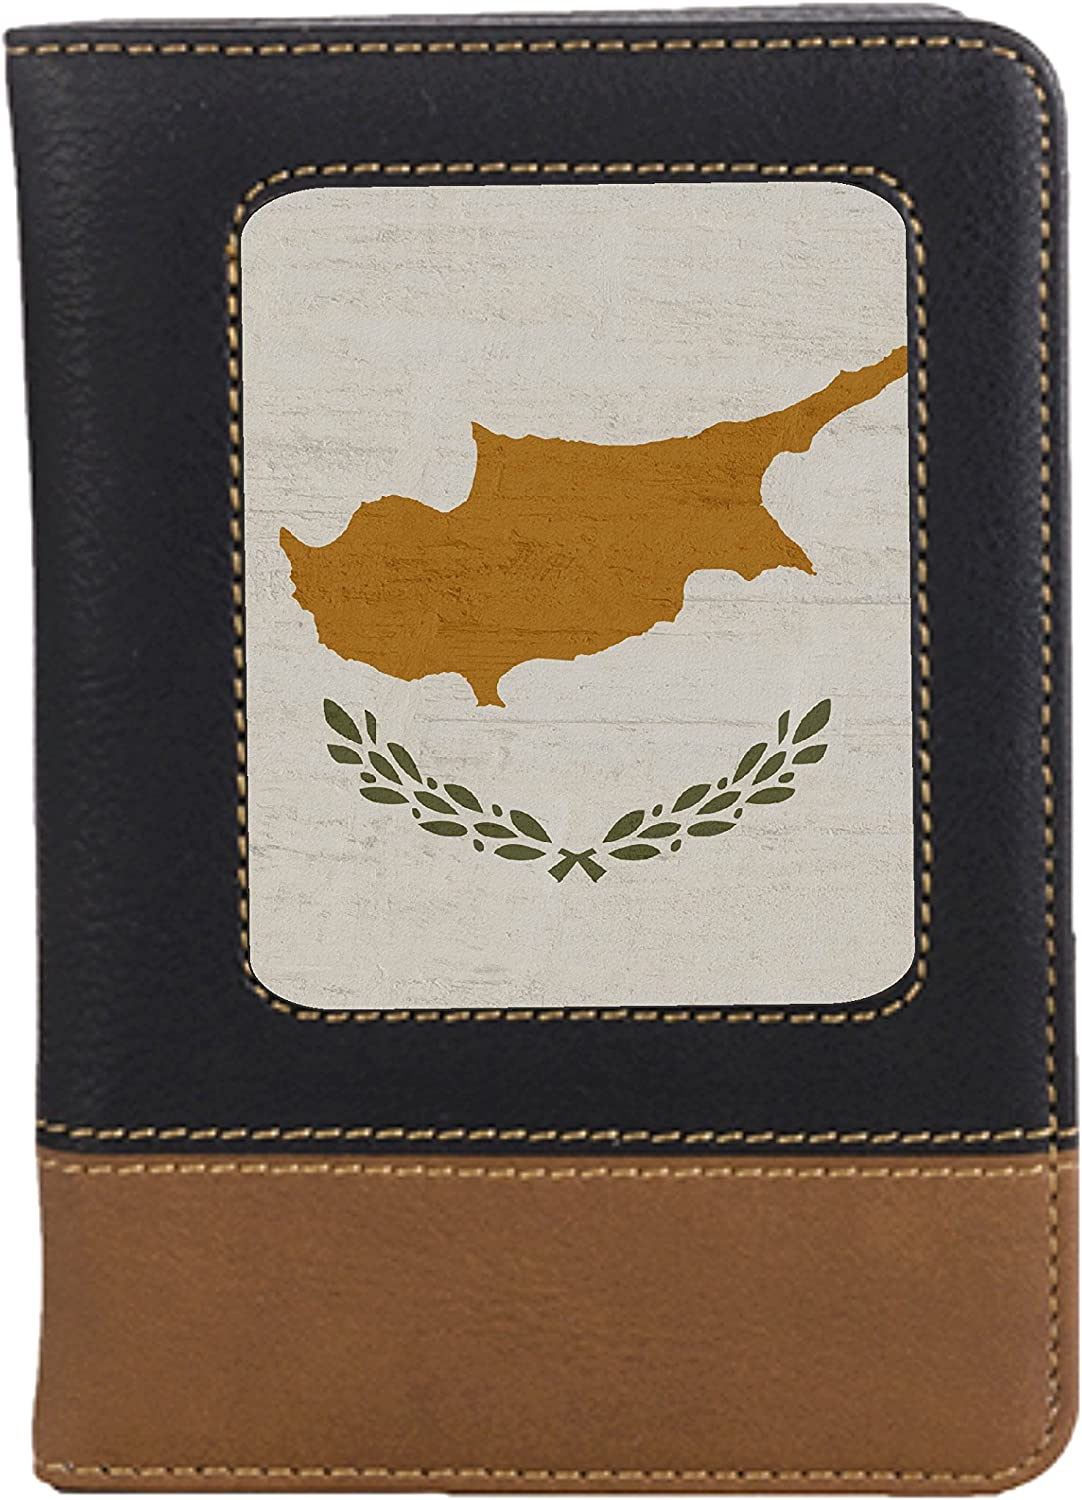 Cyprus Flag Leatherette Passport Wallet Style Case Cover For Travel